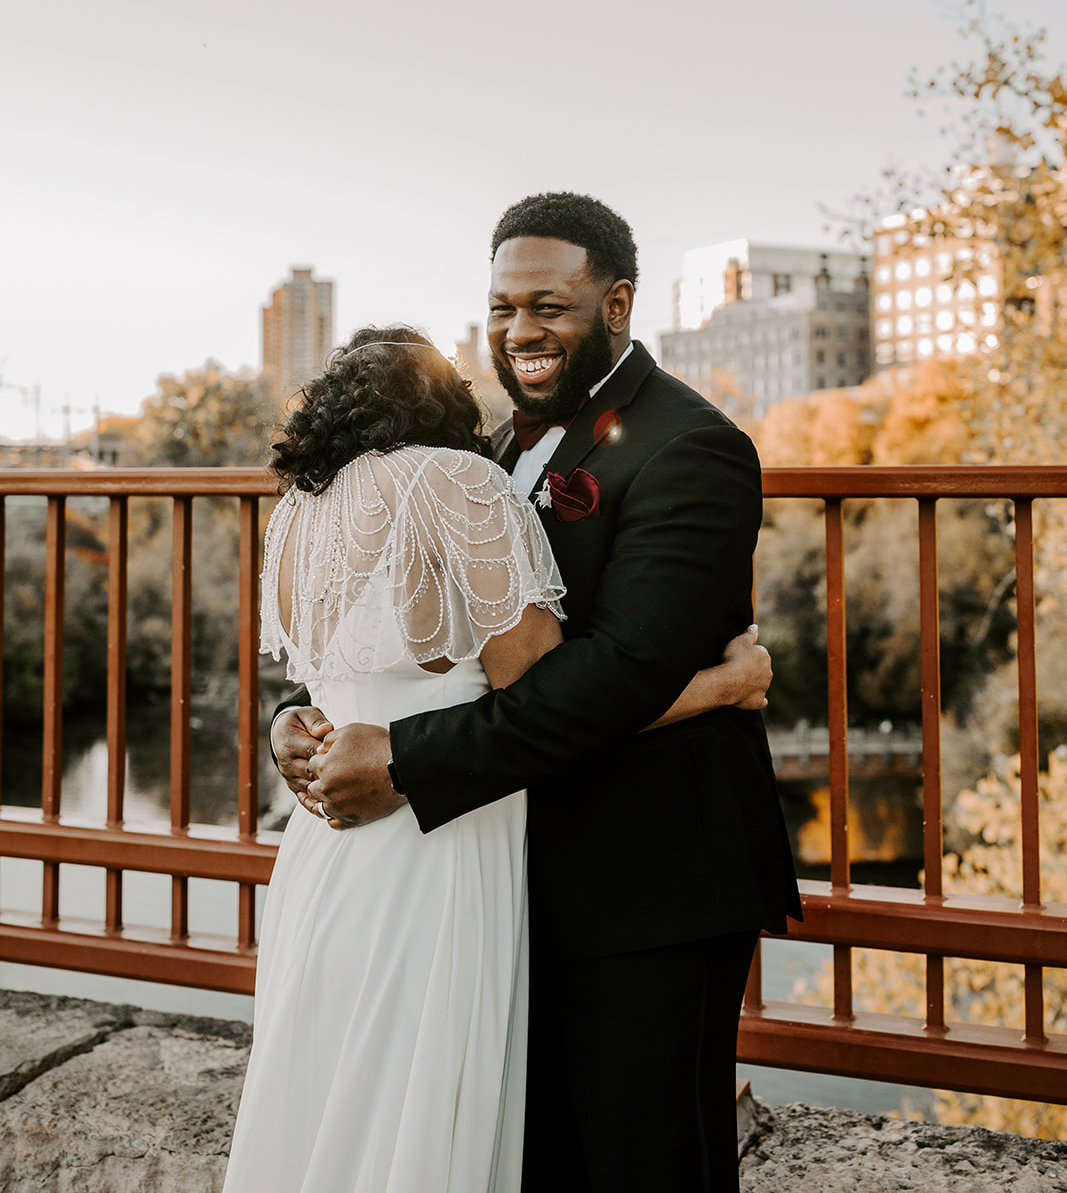 places to elope in minneapolis minnesota